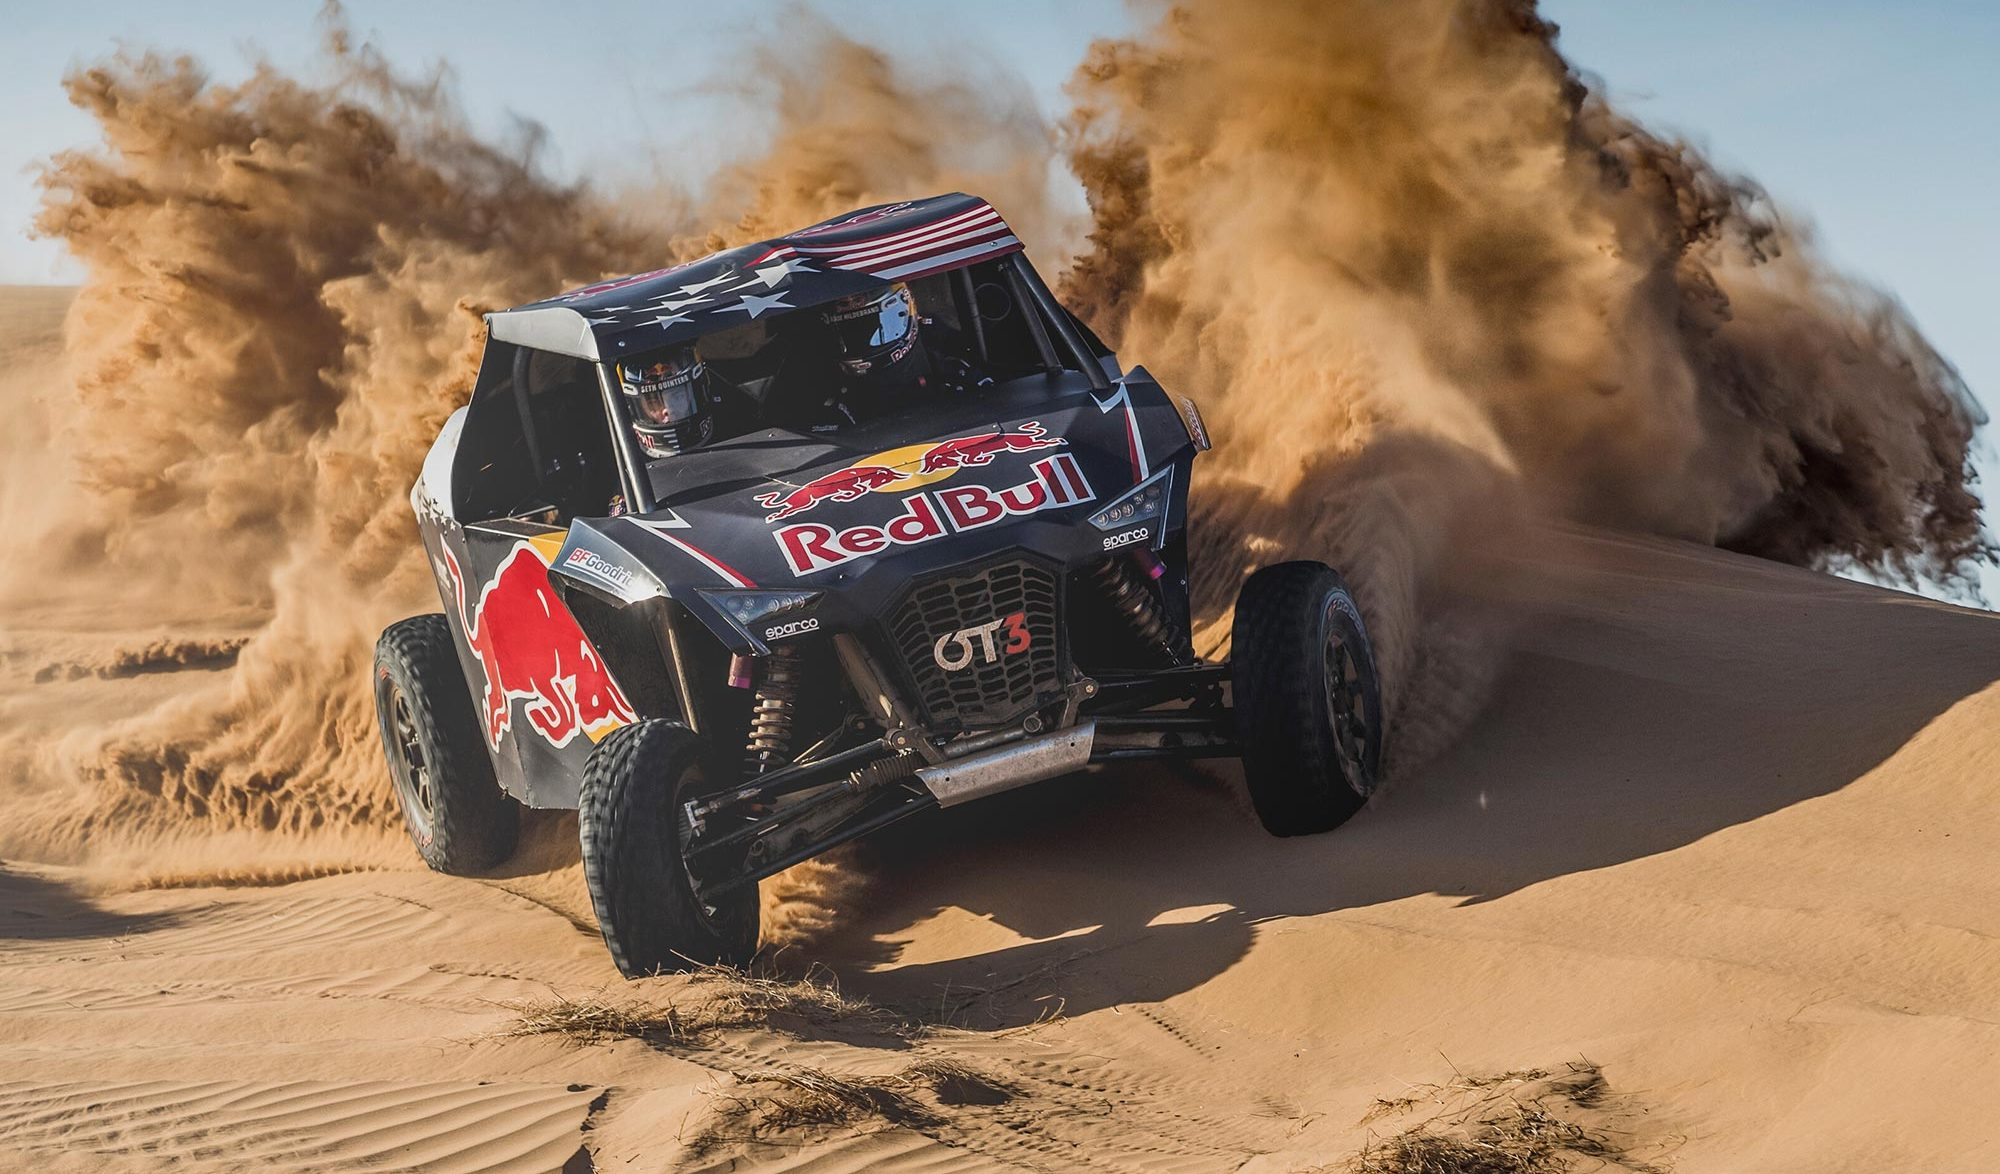 Buggy Red Bull de Cyril Despres